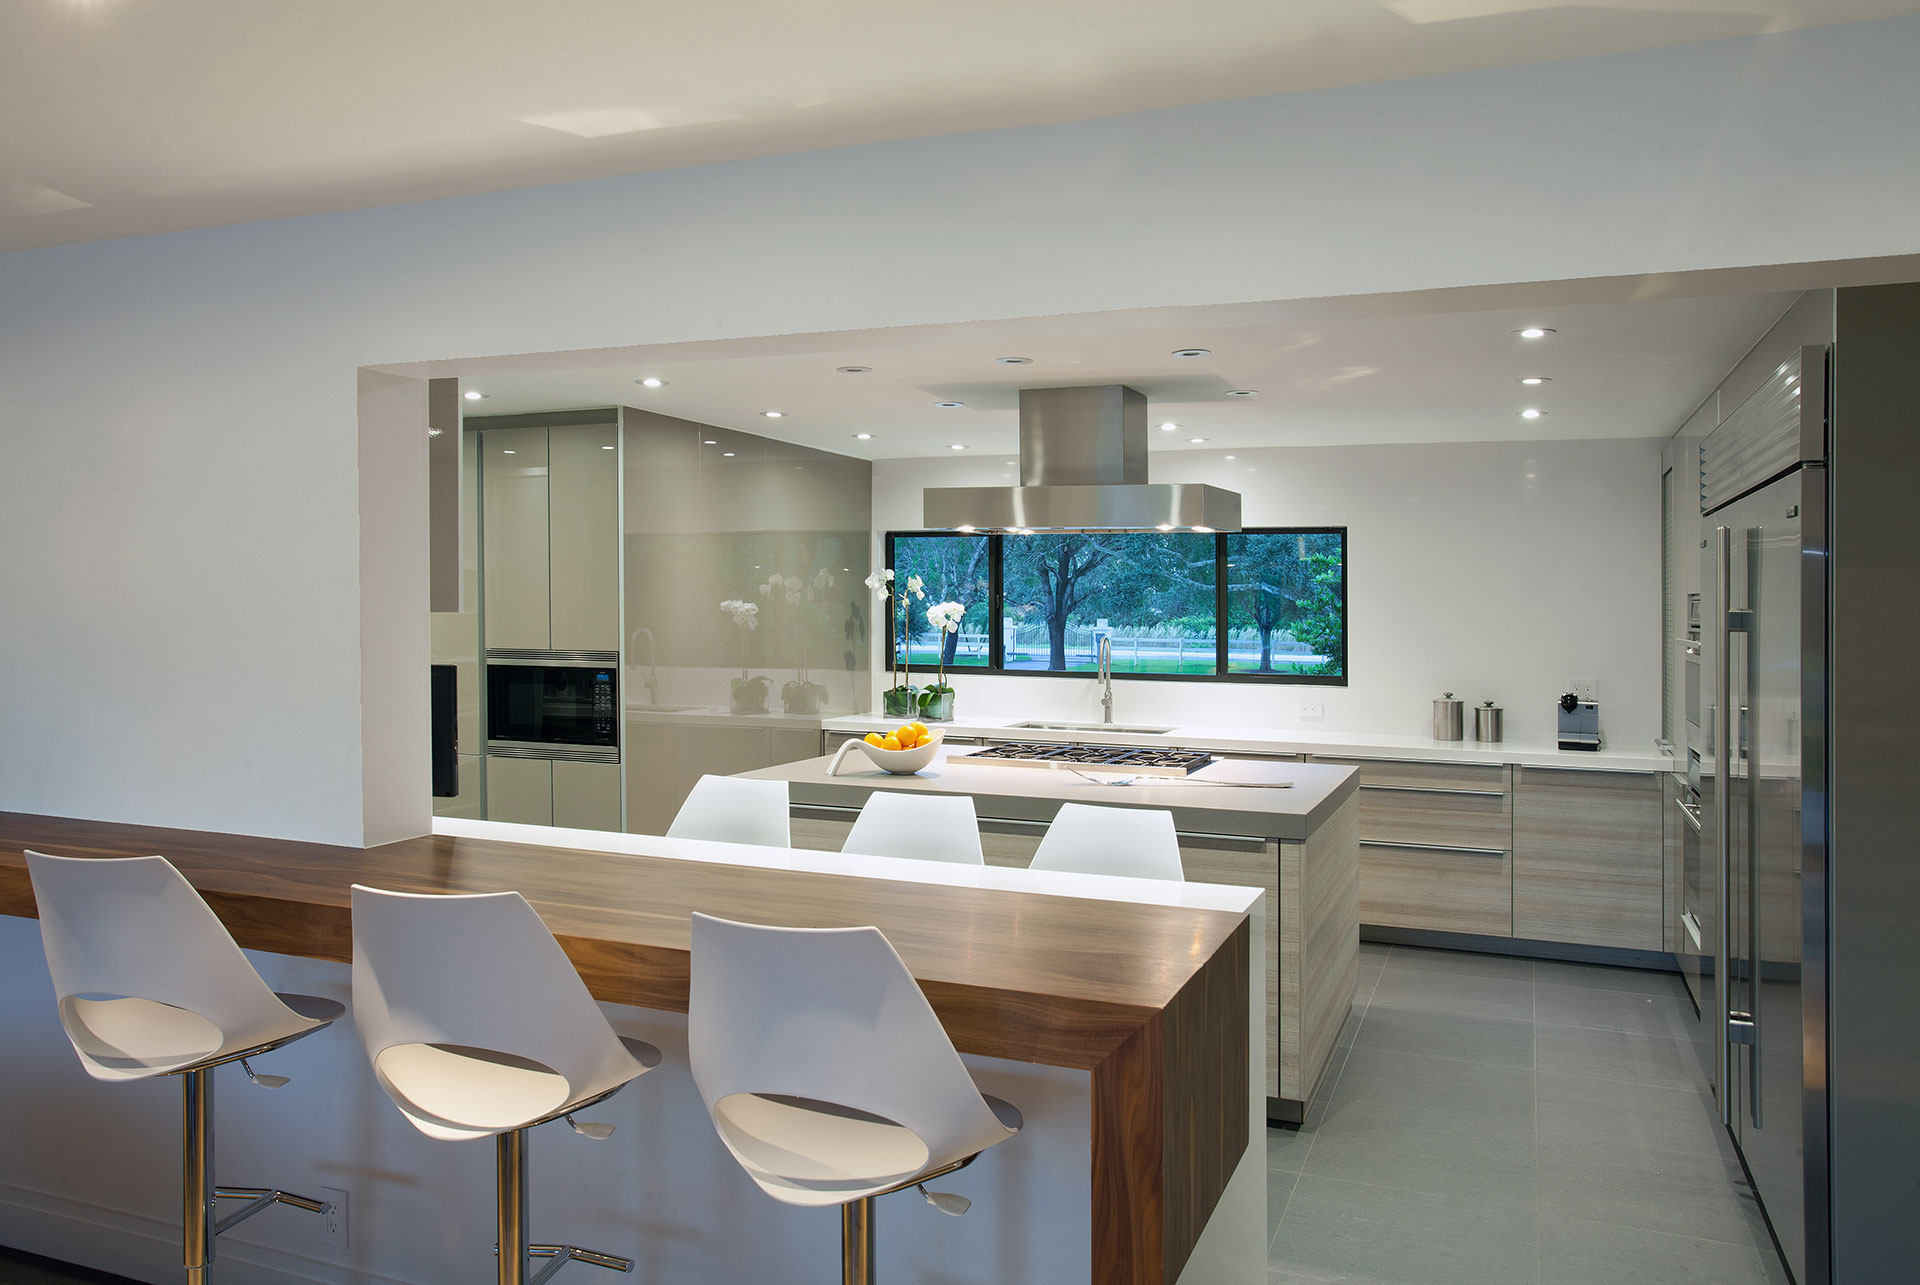 Interior Design kitchen view project in Southwest Ranches, Florida